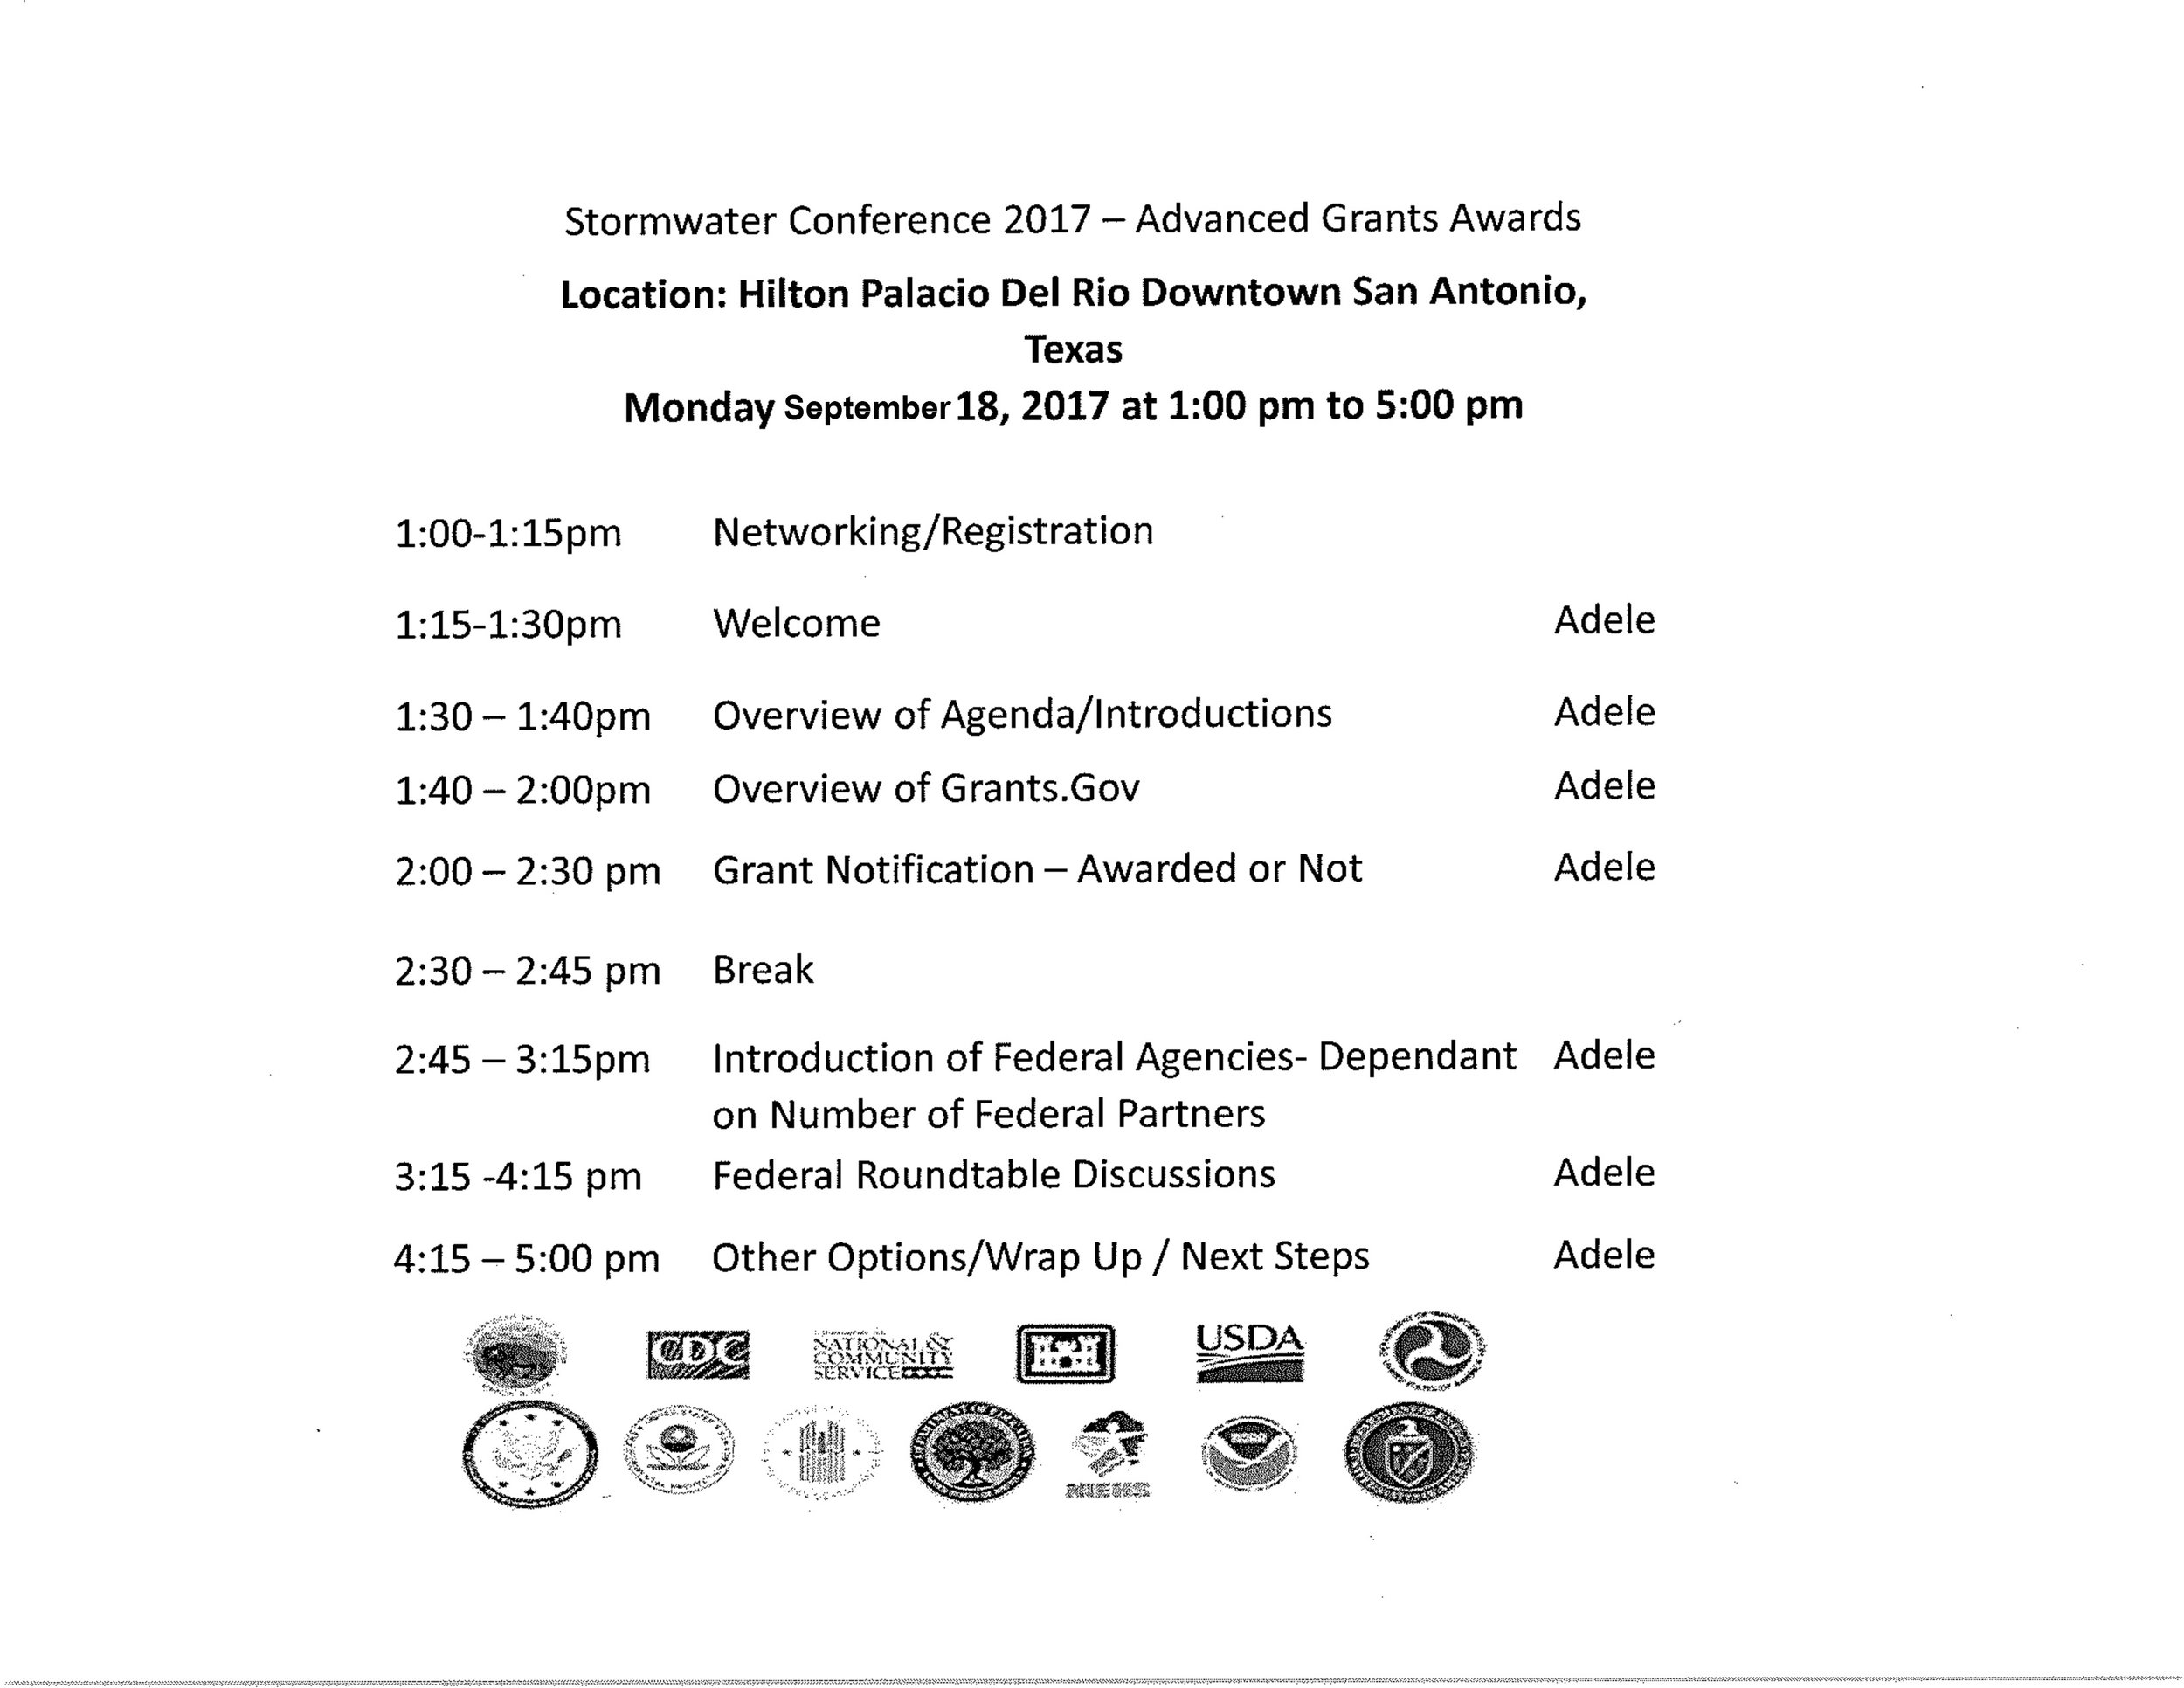 Stormwater Conference 2017- Advanced Grants Awards.jpg